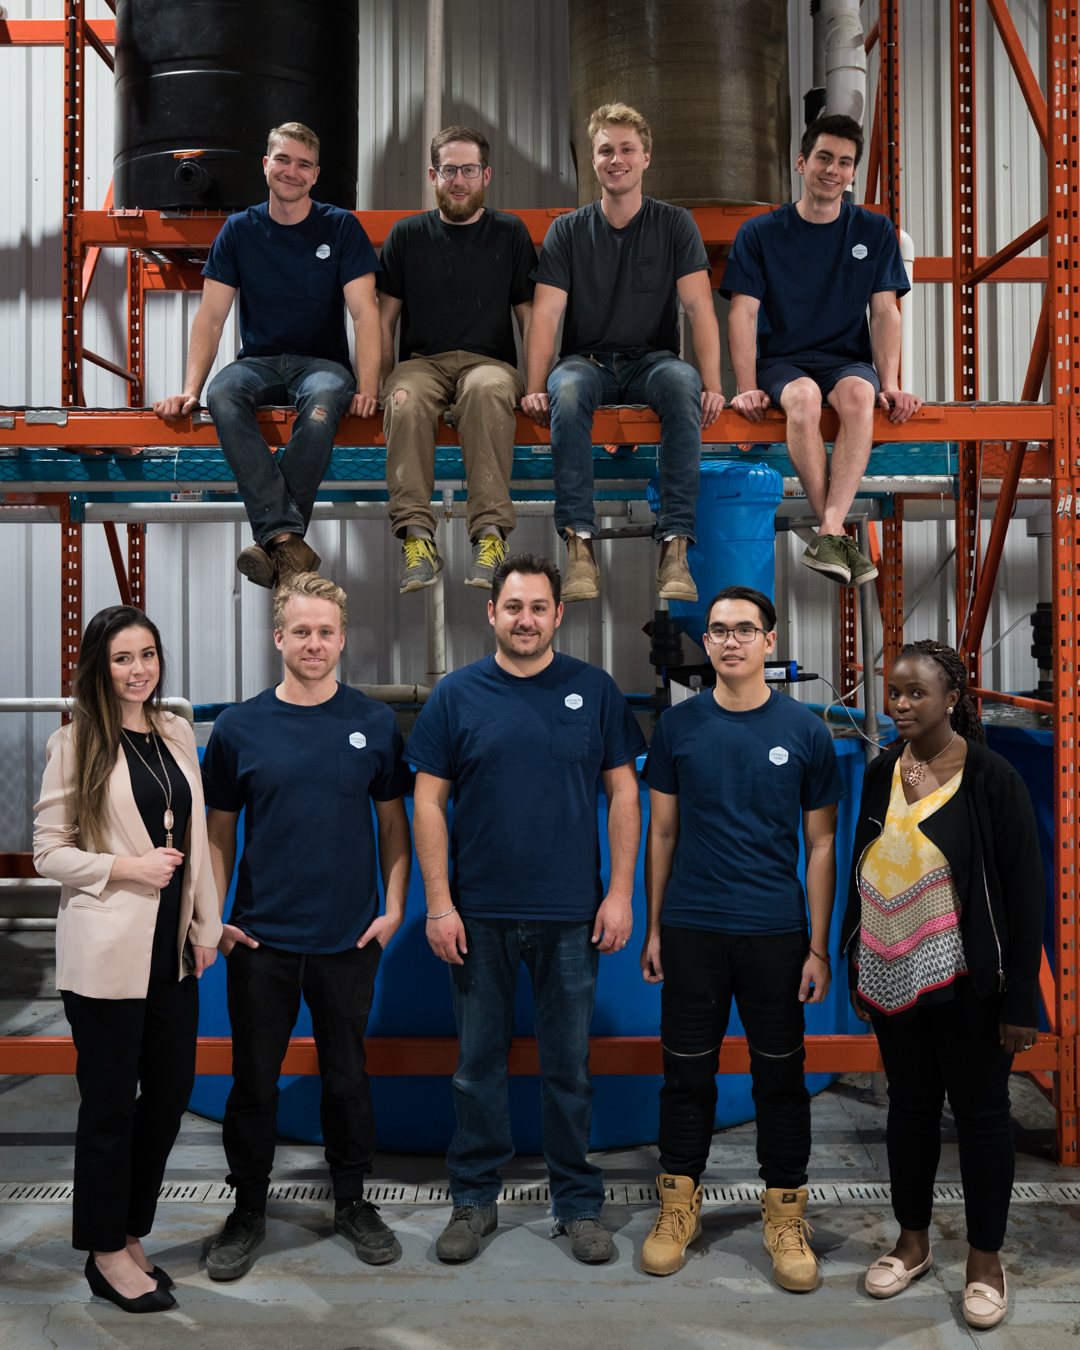 The Deepwater Farms team  (October 2018)